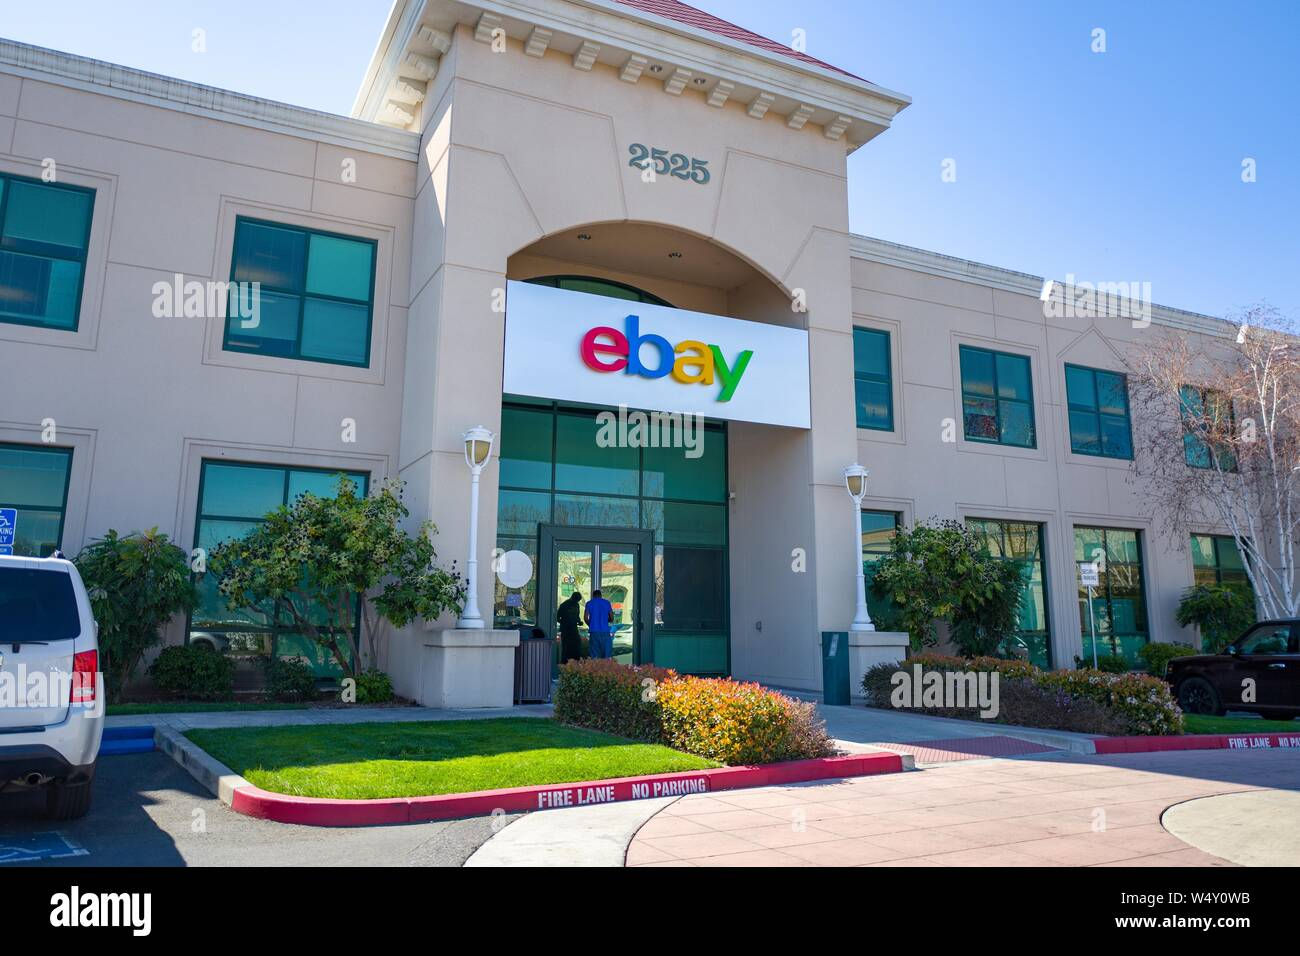 Sign On Facade At Headquarters Of Internet Auction Company Ebay In The Silicon Valley San Jose California March 15 2019 Stock Photo Alamy